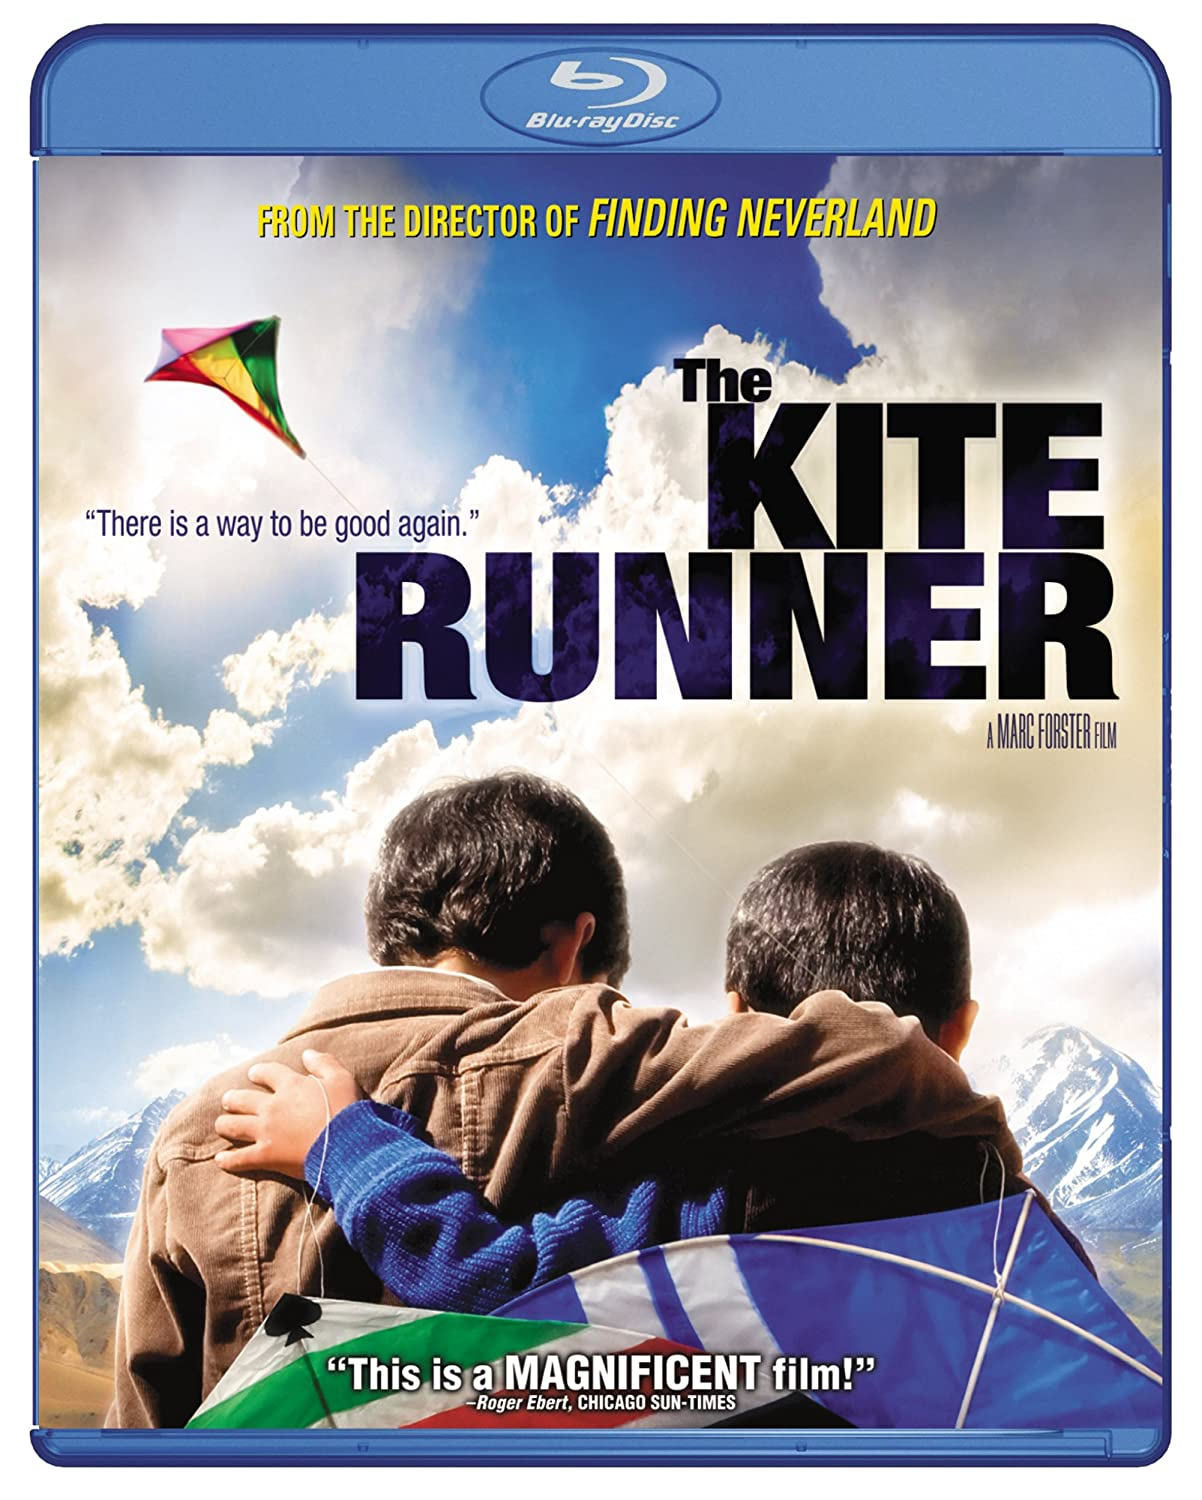 com the kite runner blu ray khalid abdalla ahmad khan com the kite runner blu ray khalid abdalla ahmad khan mahmoodzada atossa leoni shaun toub sayed jafar masihullah gharibzada zekeria ebrahimi